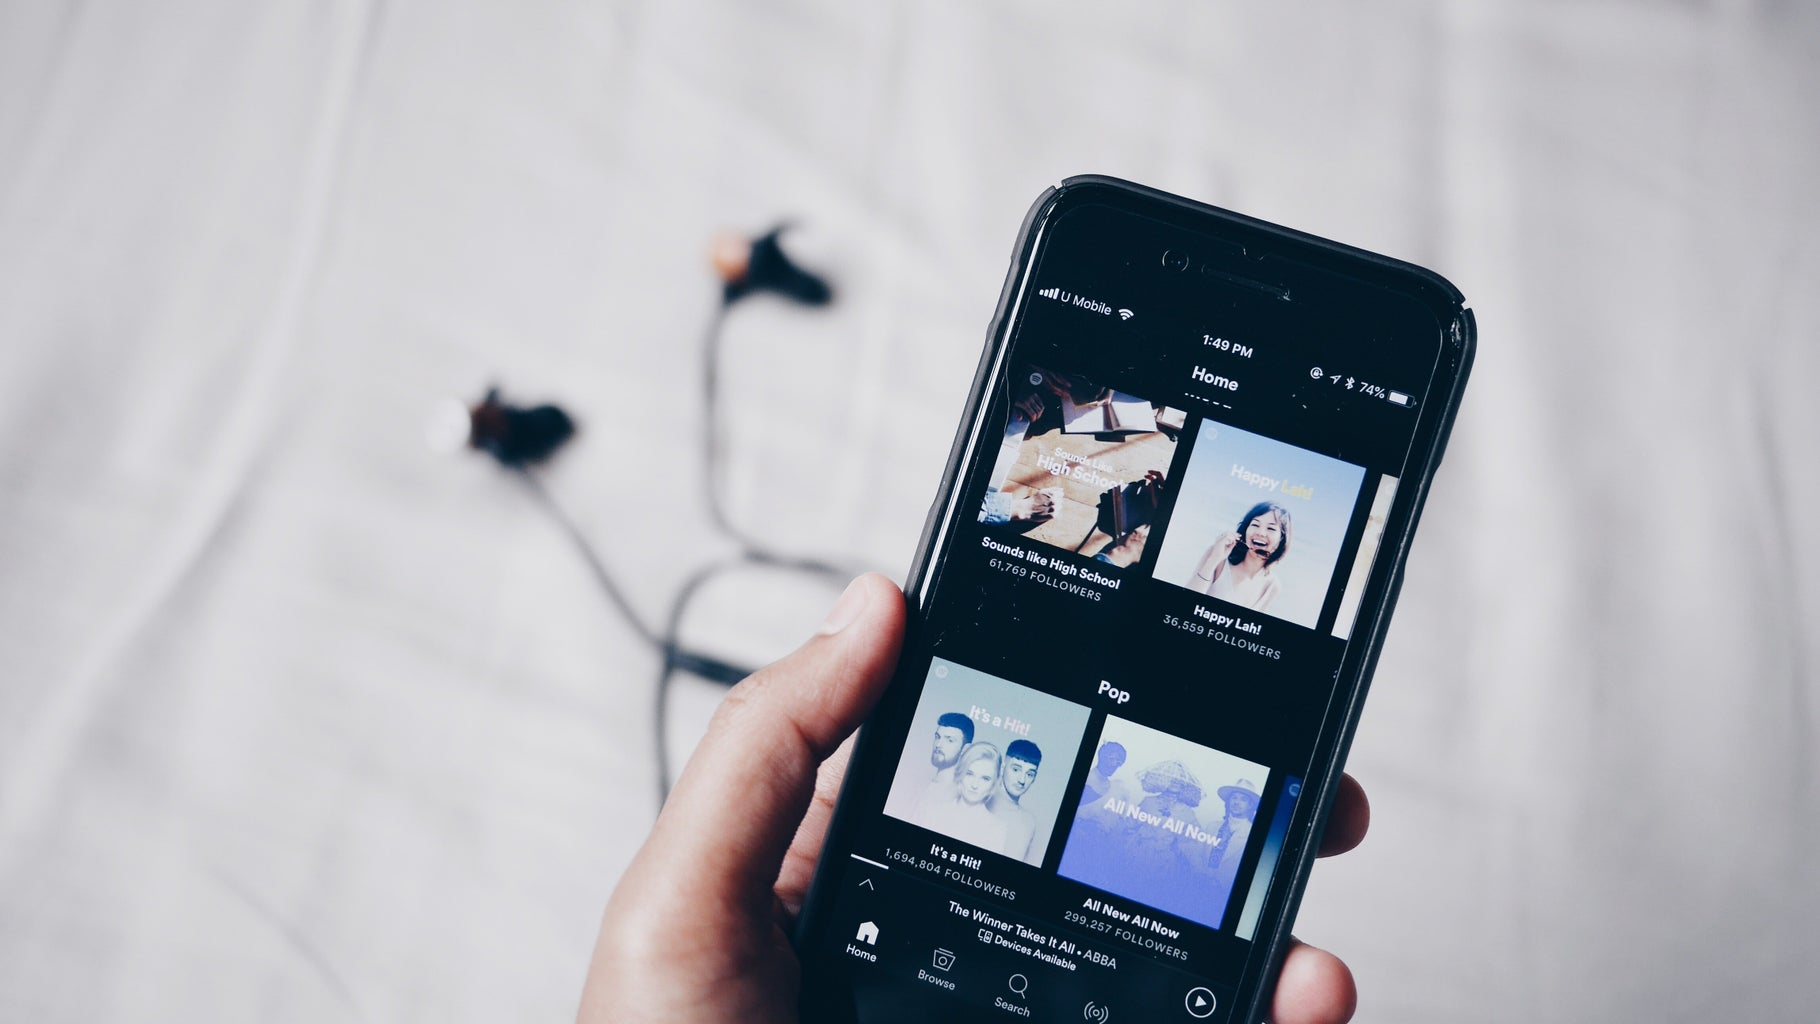 hand holding iphone showing spotify